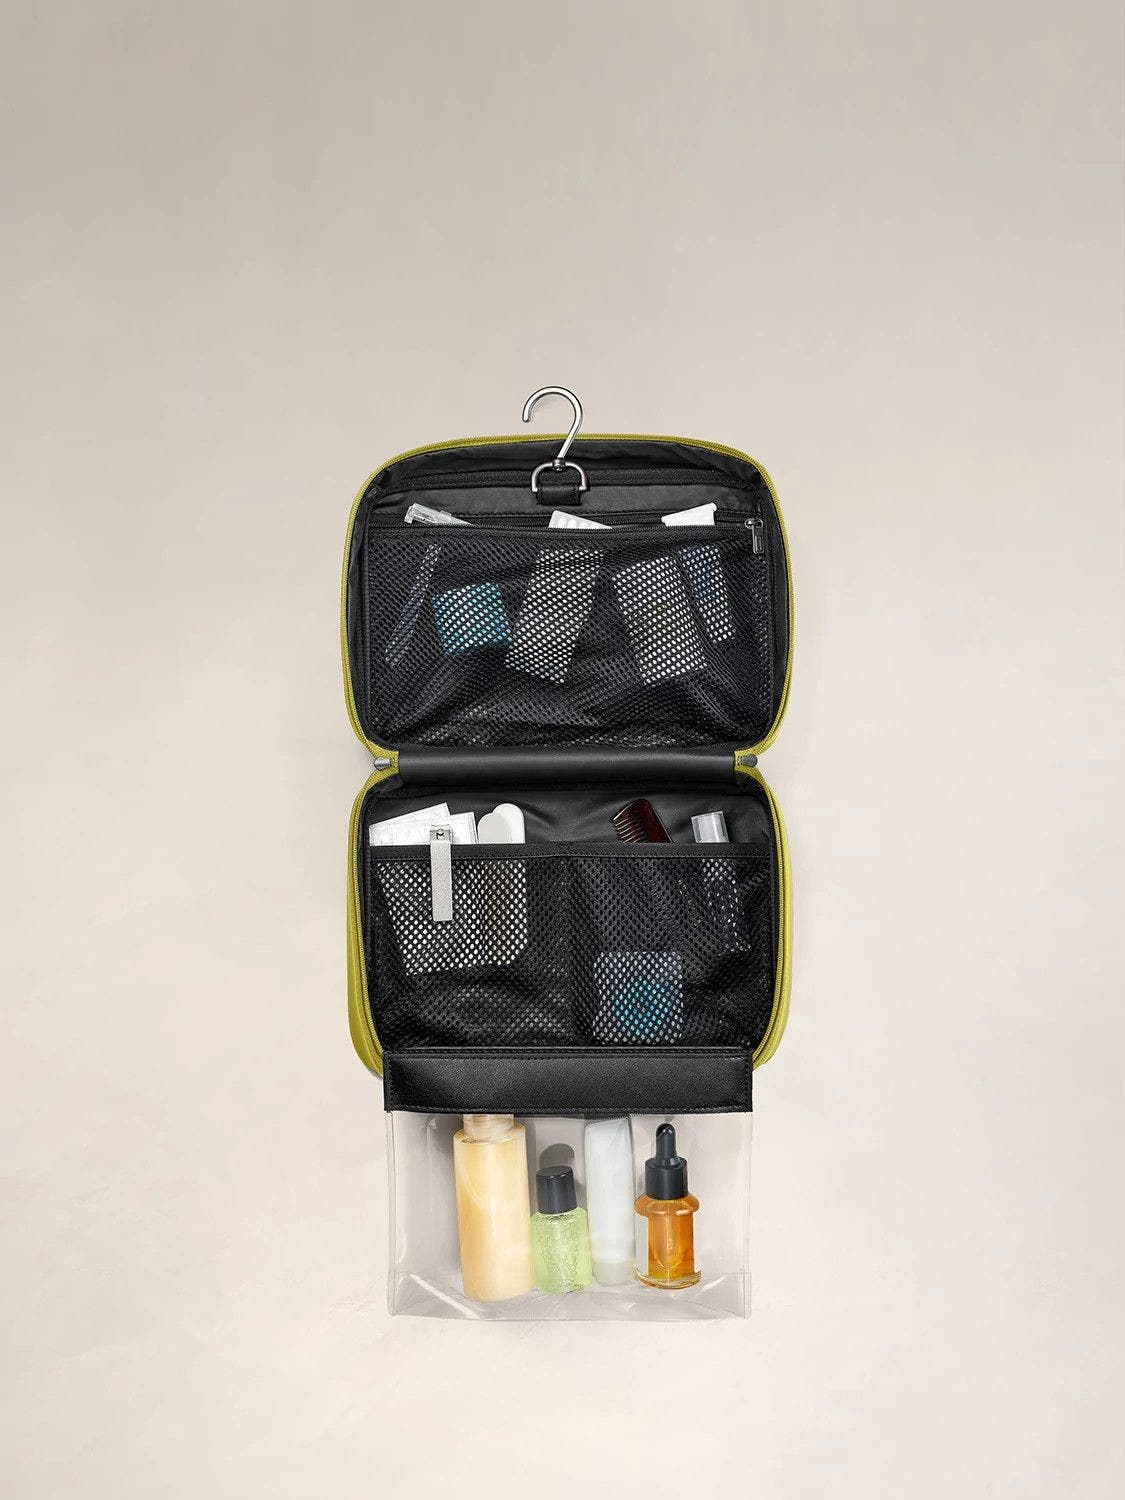 An internal view of a pistachio green toiletry bag packed with travel accessories within mesh pockets.